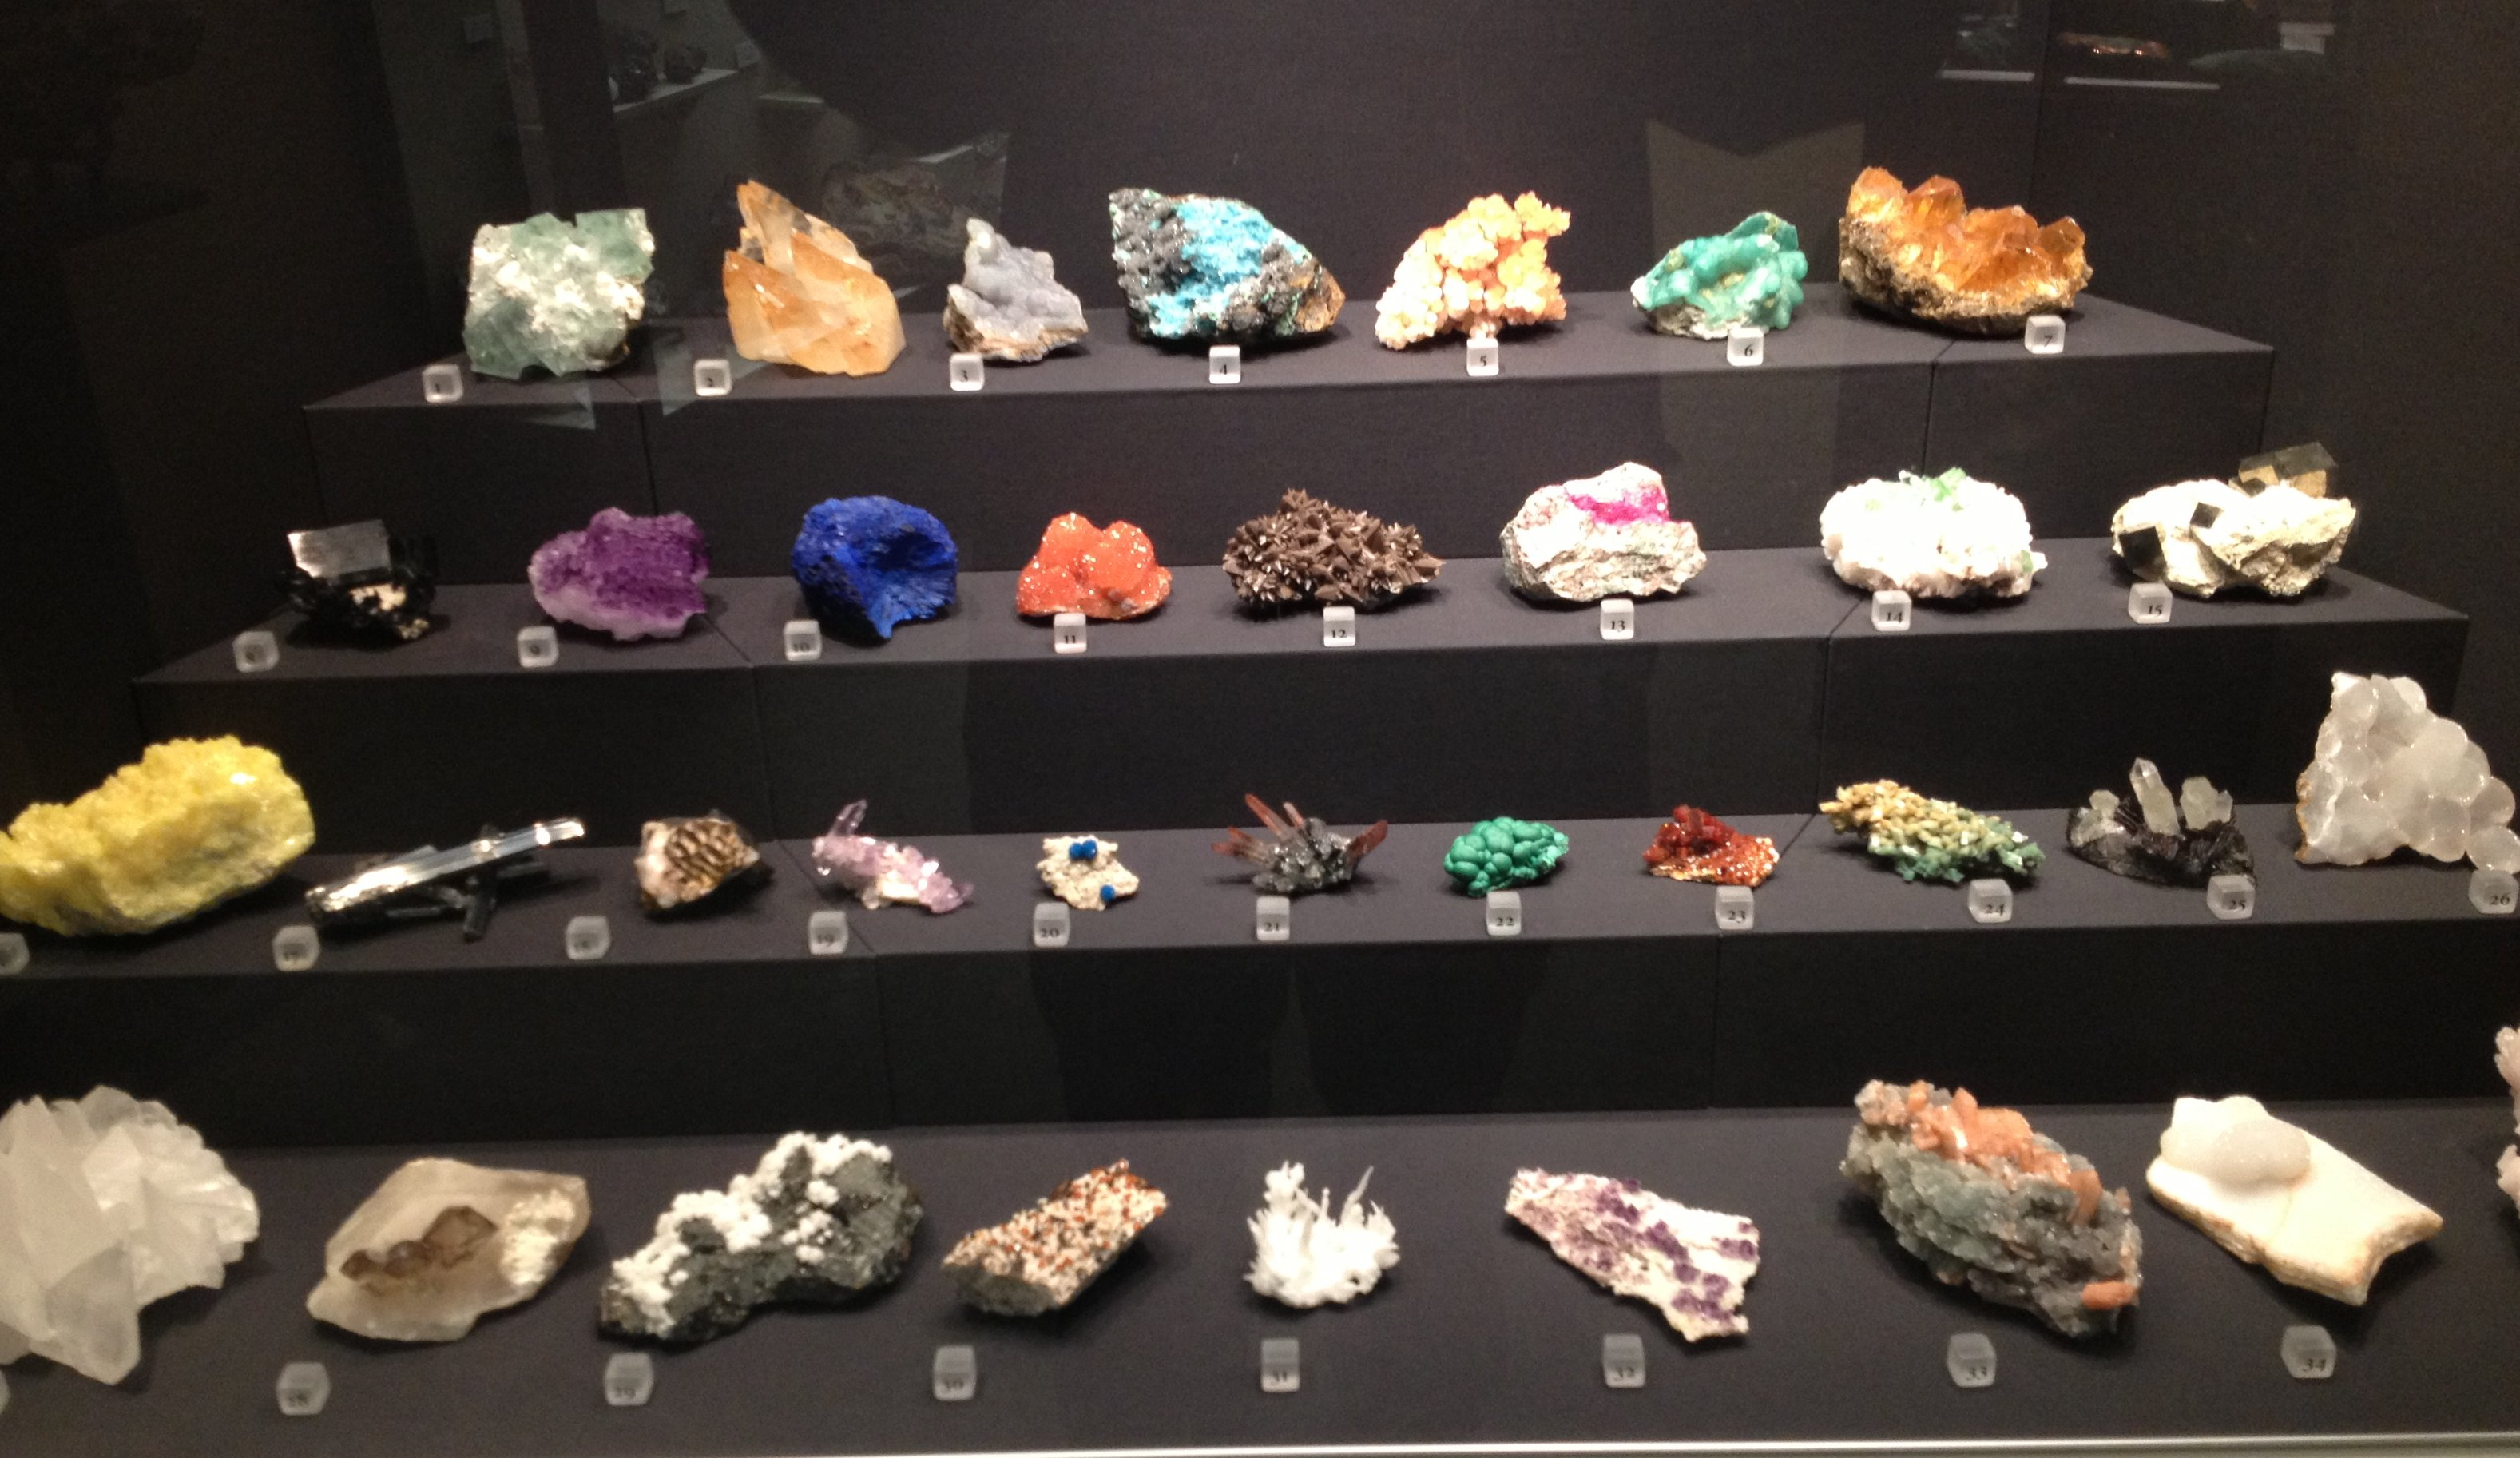 Display Case Of Minerals Image Free Stock Photo Public